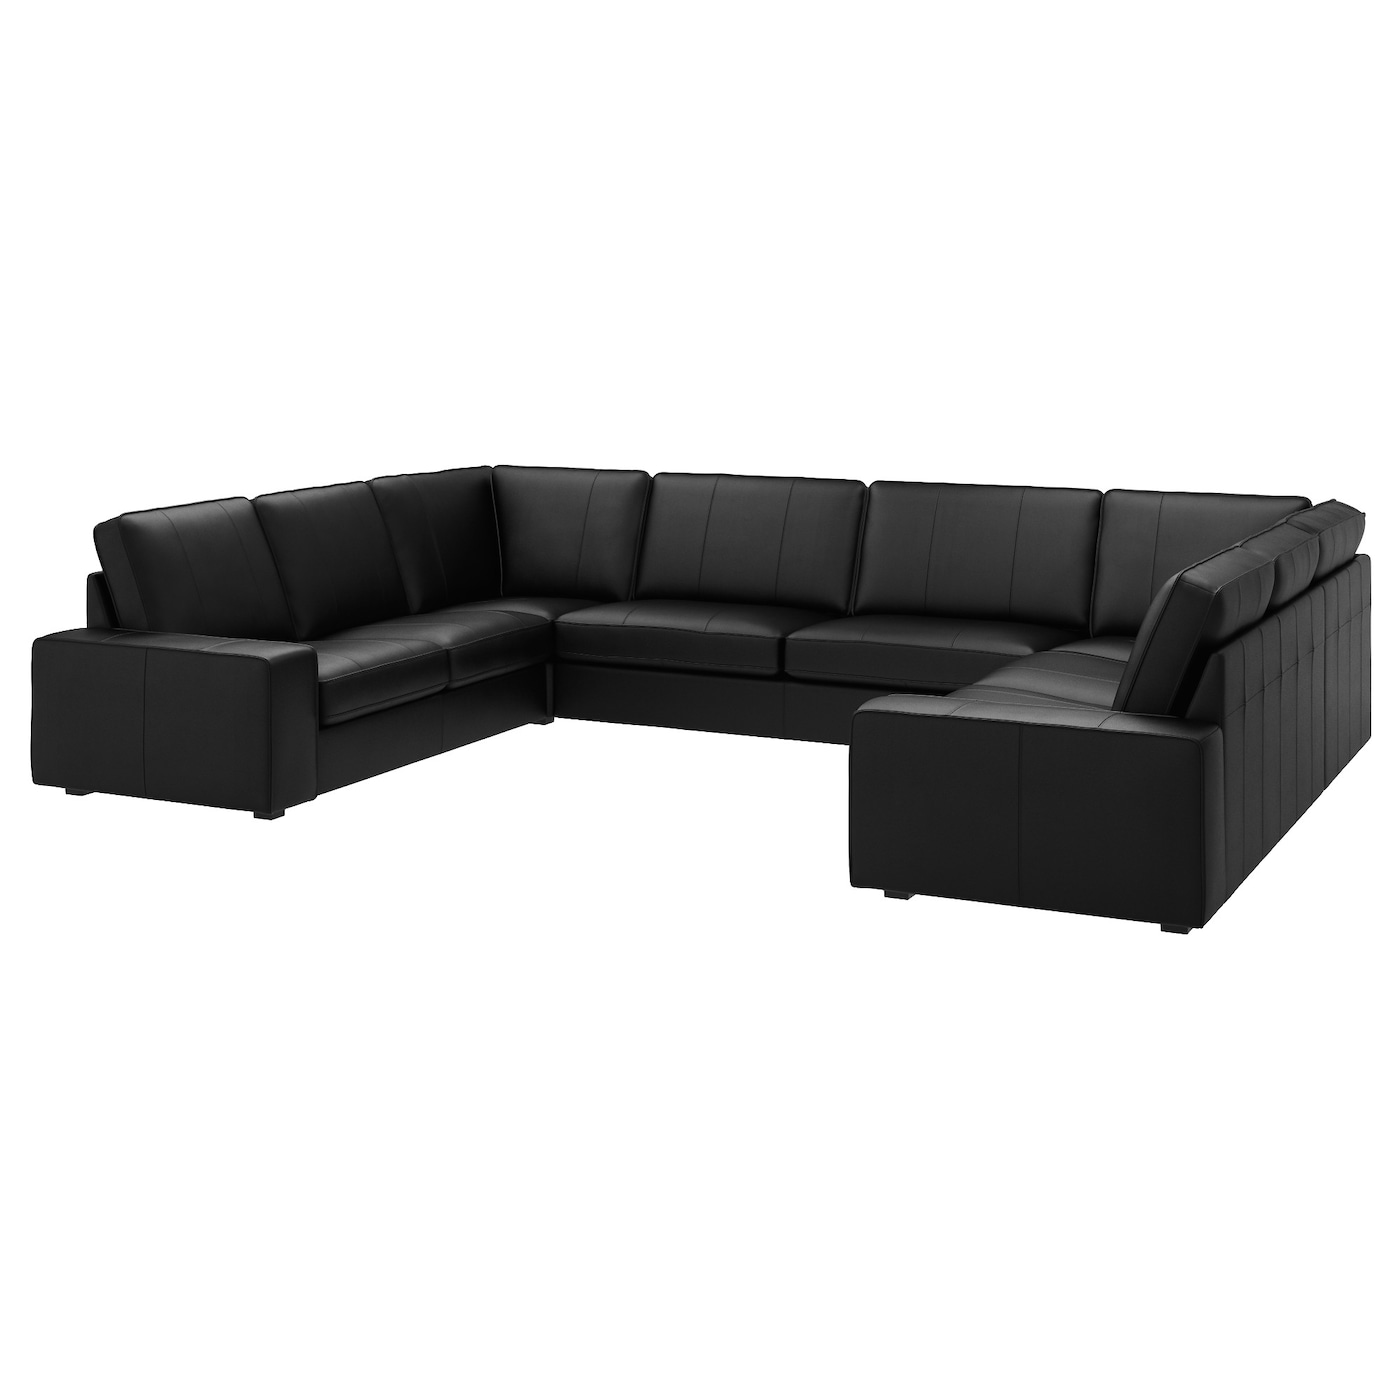 Leather Sofas & Coated Fabric Sofas